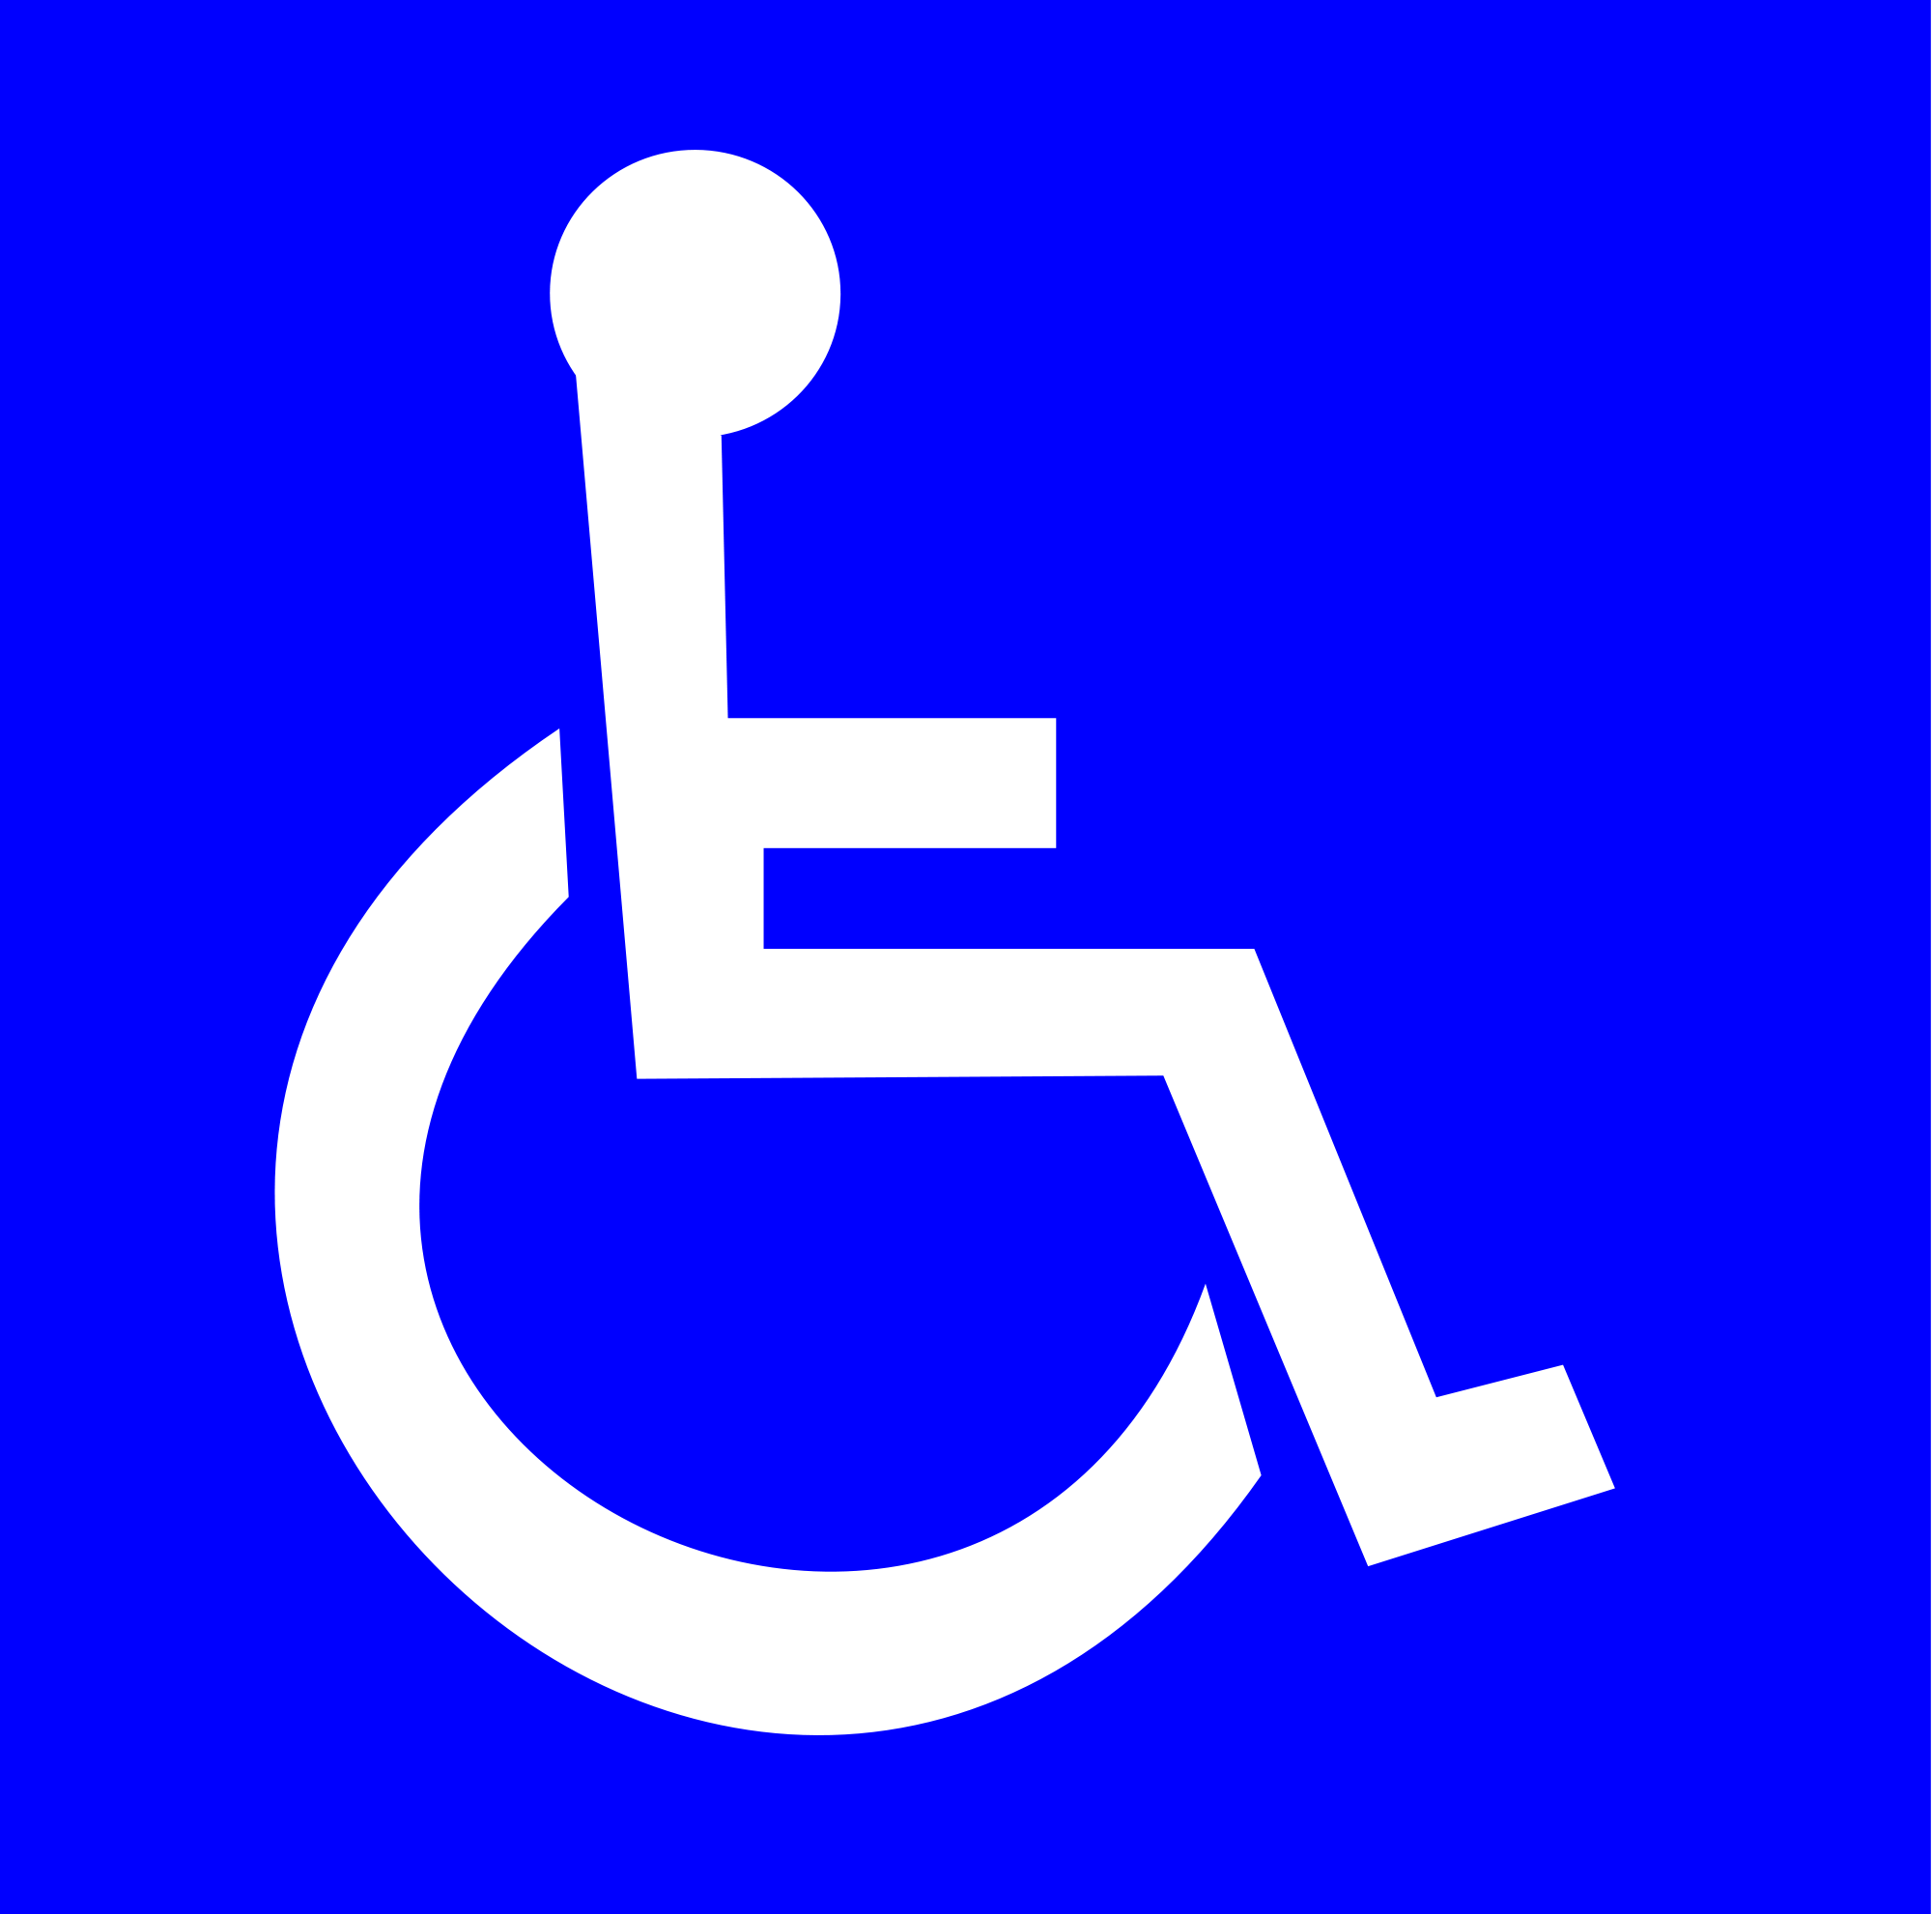 International Symbol of Access.